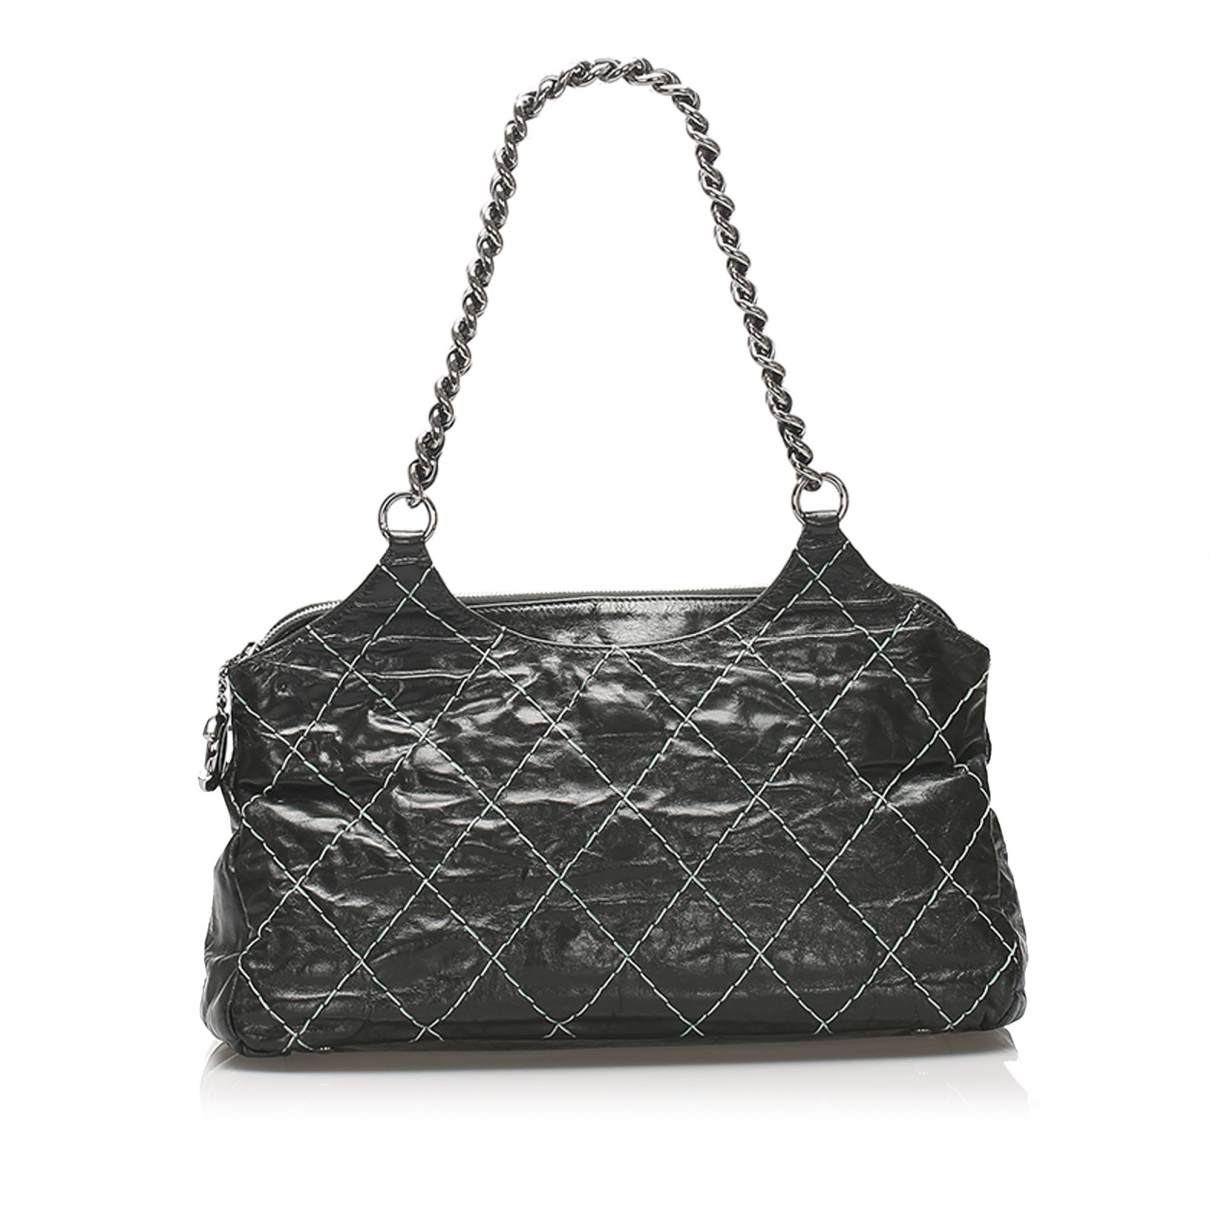 Chanel N Black Leather handbag for Women N